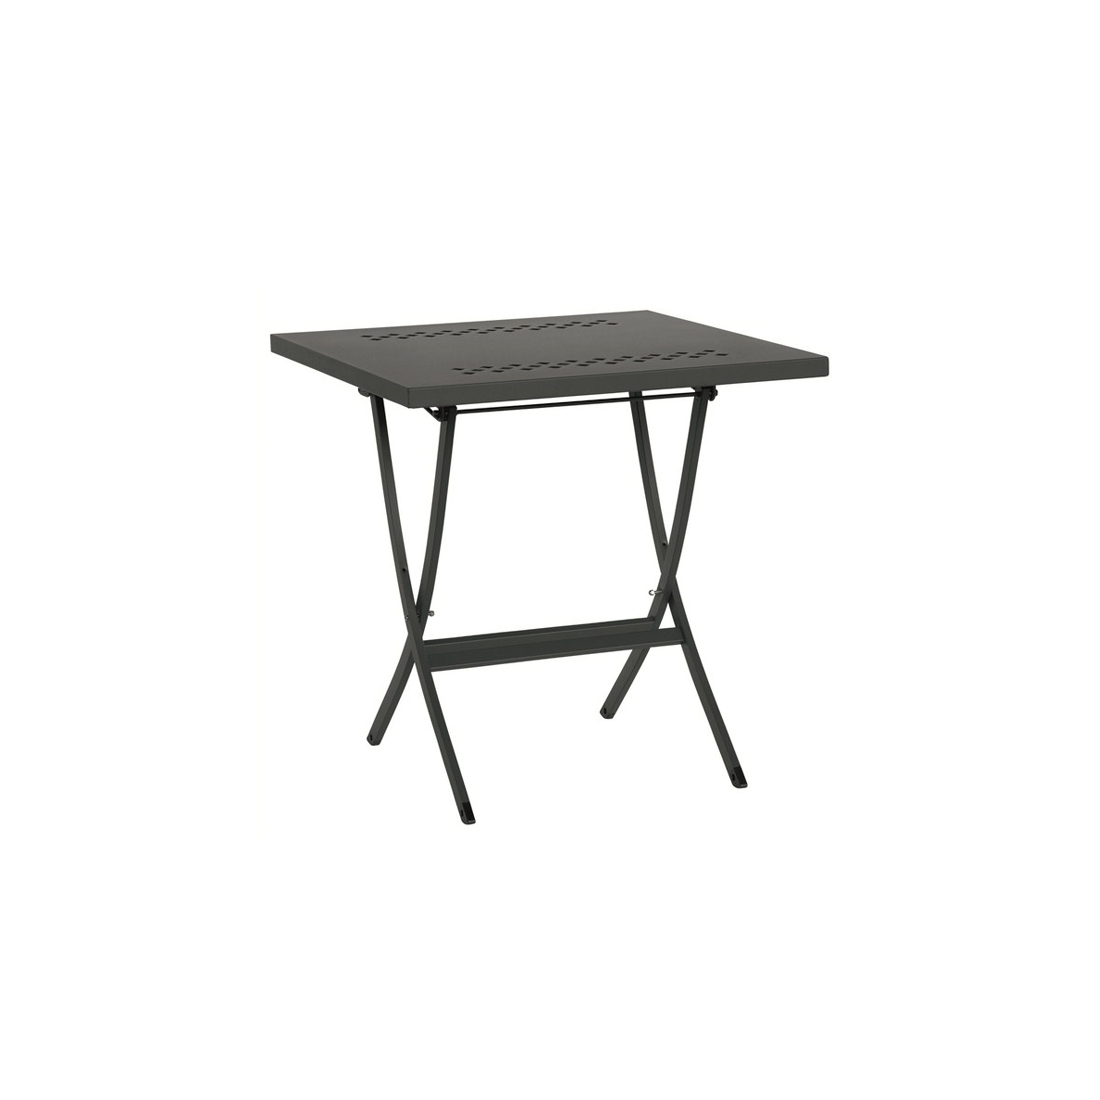 Table de jardin pliante rd italia zendart design - Table pliante de jardin ...